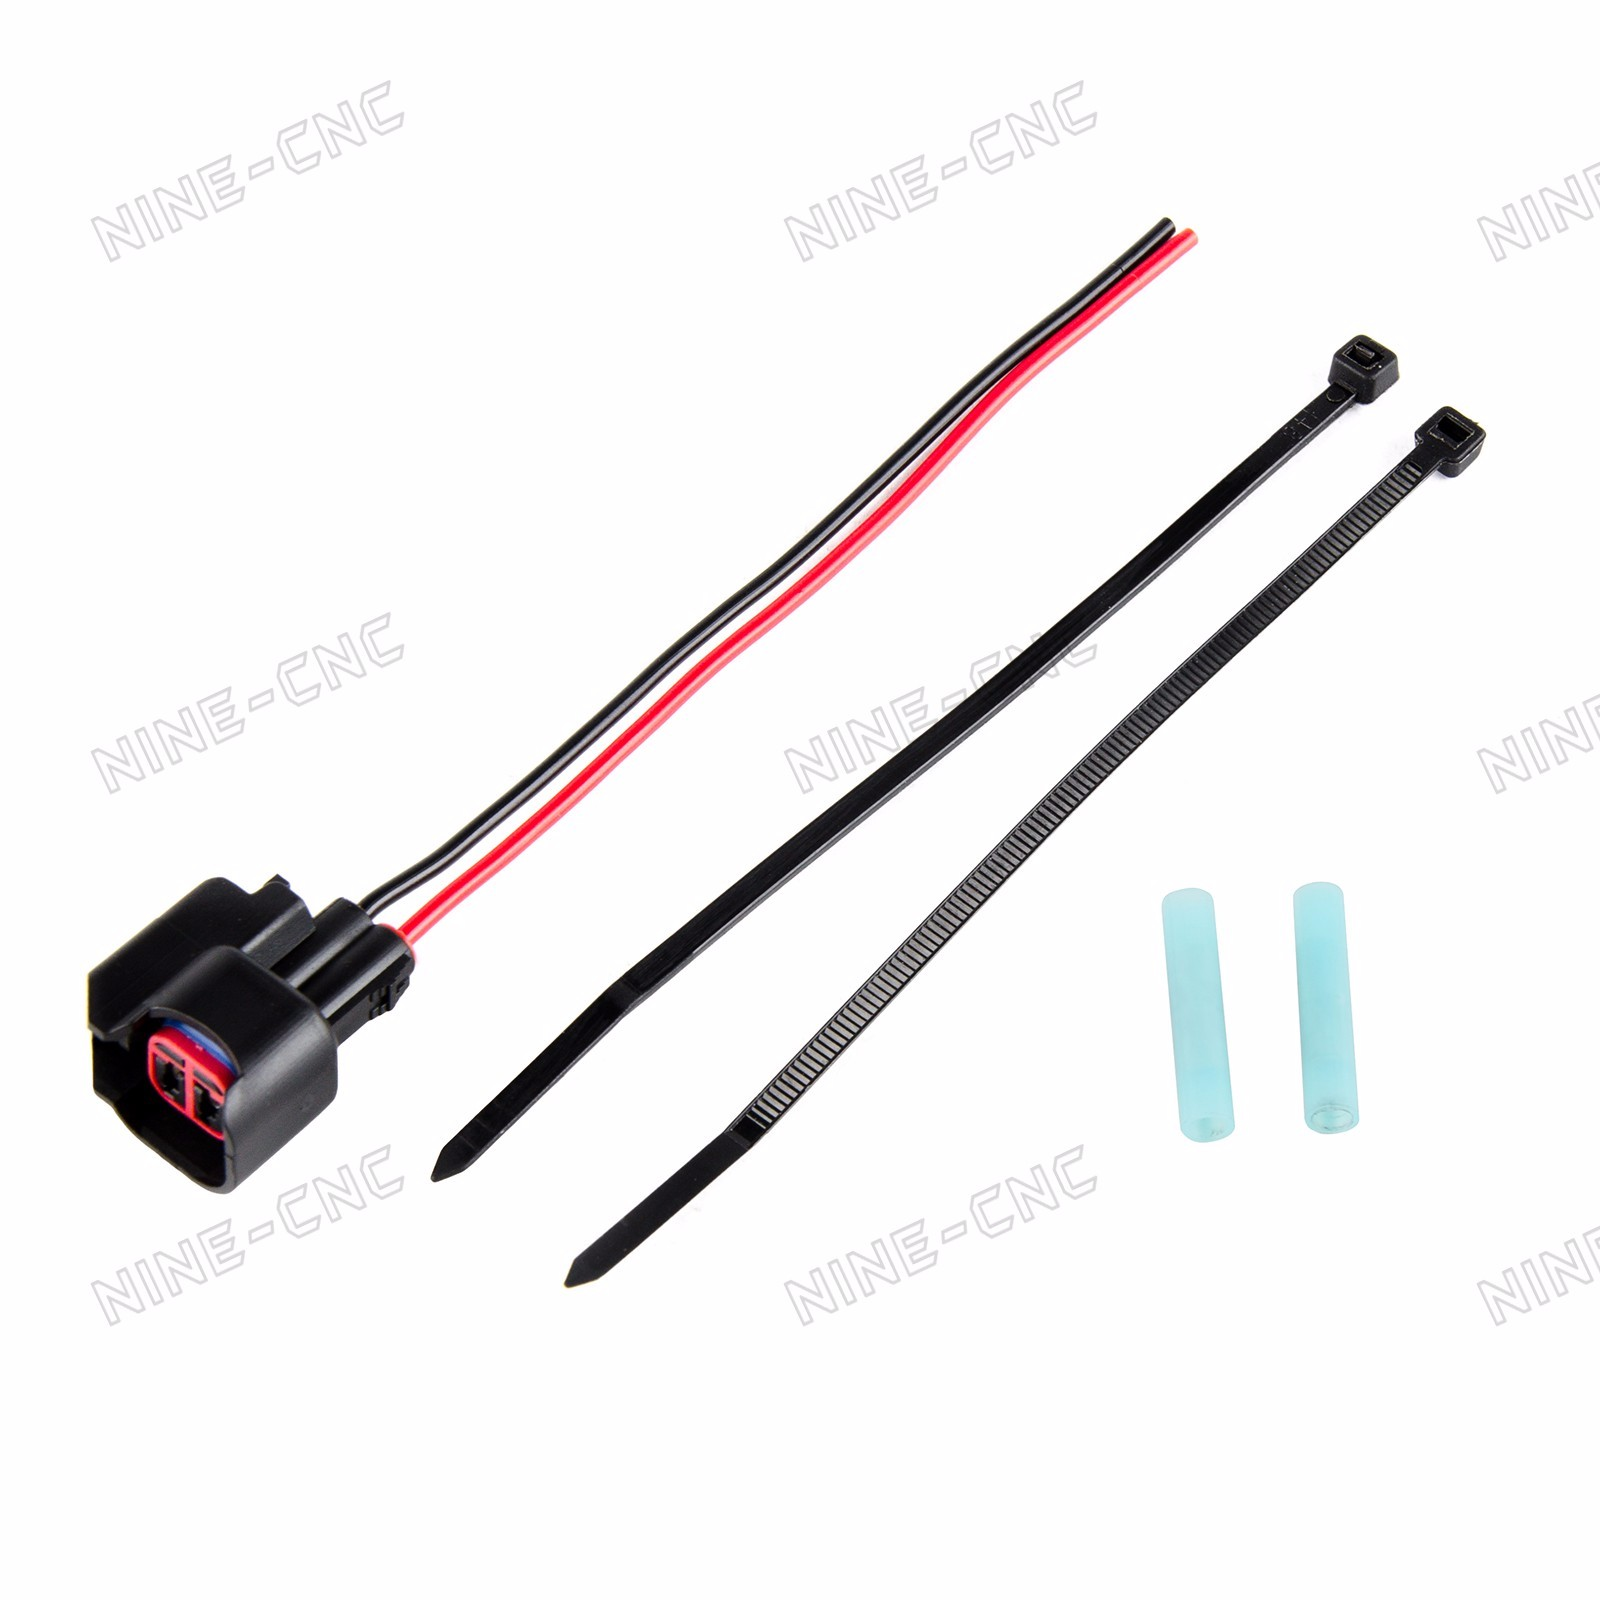 Fuel Injector Pigtail Harness Repair Kit For Polaris Ranger 800 RZR 570 800